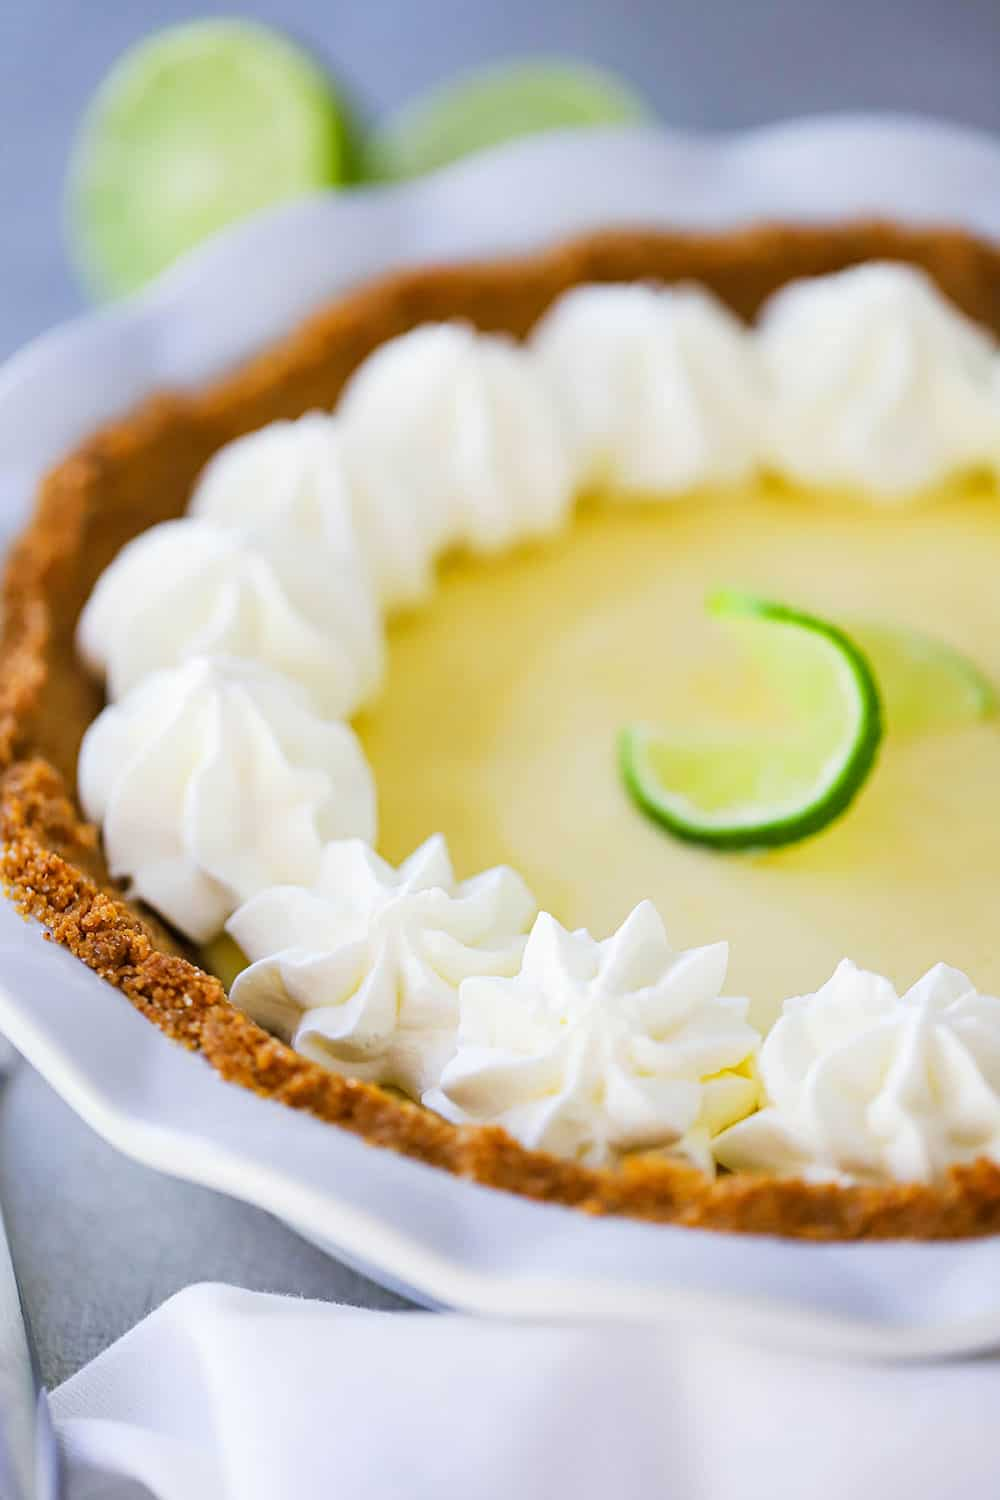 A close-up view of a key lime pie with whipped cream puffs along the edge of the pie.